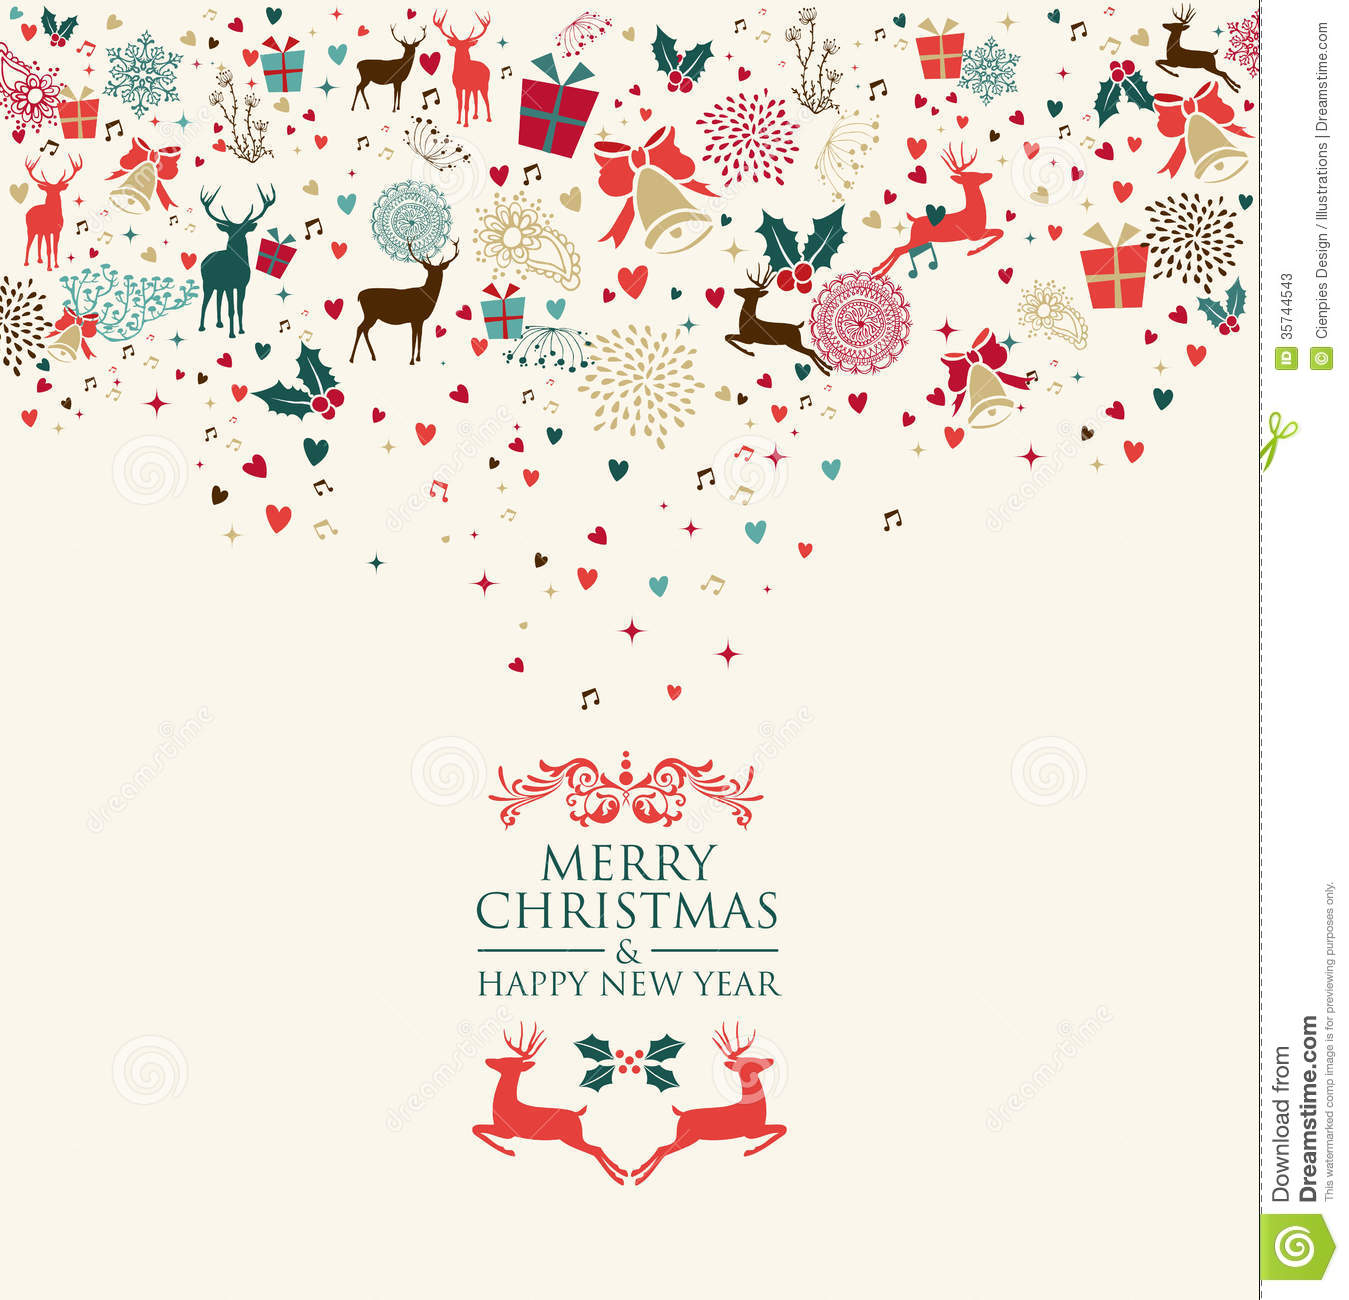 Merry Christmas And Happy New Year Greeting Card Stock Photos - Image: 35744543